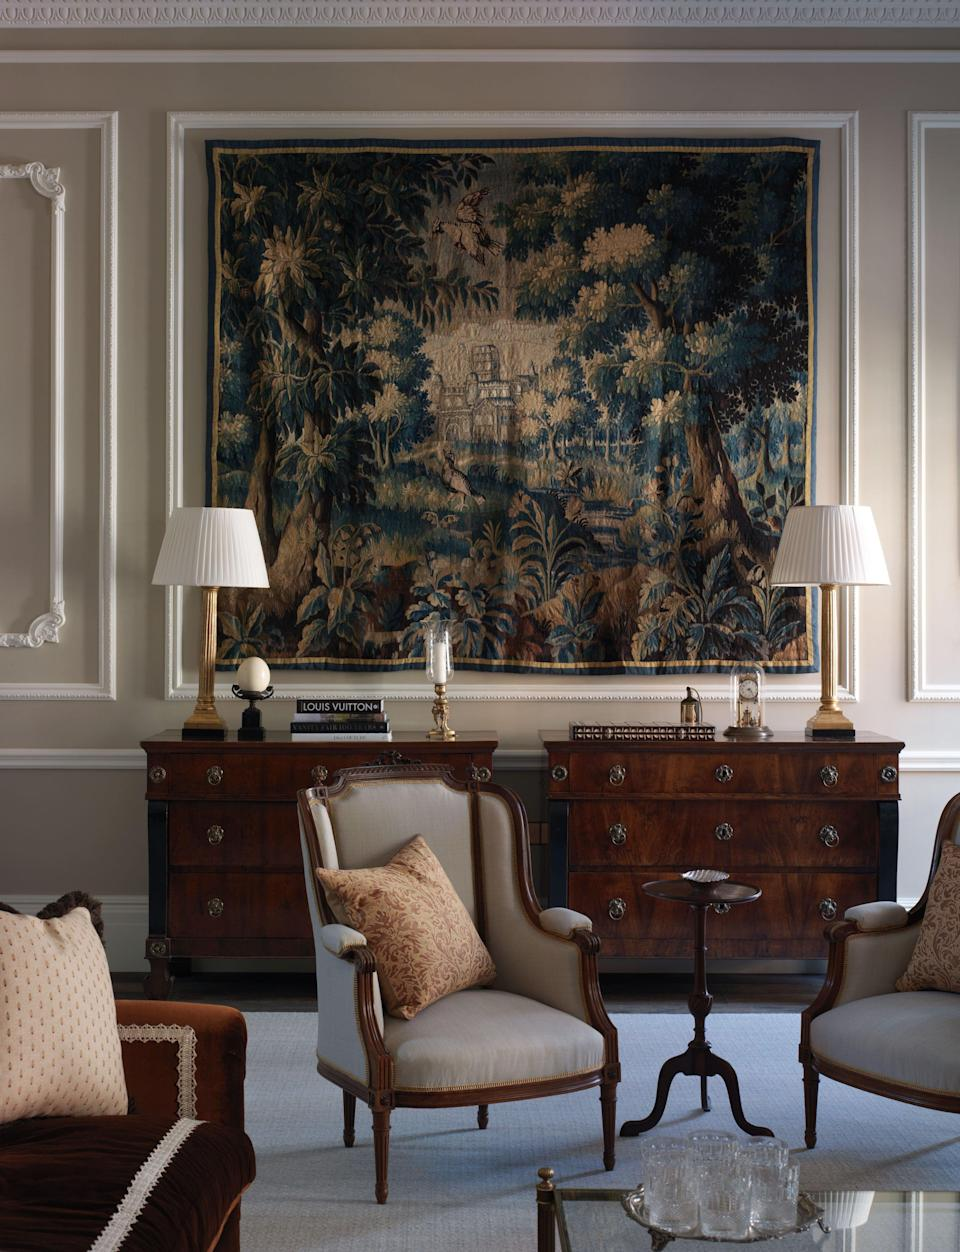 Tapestry adorns a living room in Kensington, London, designed by Albion Nord (Supplied)